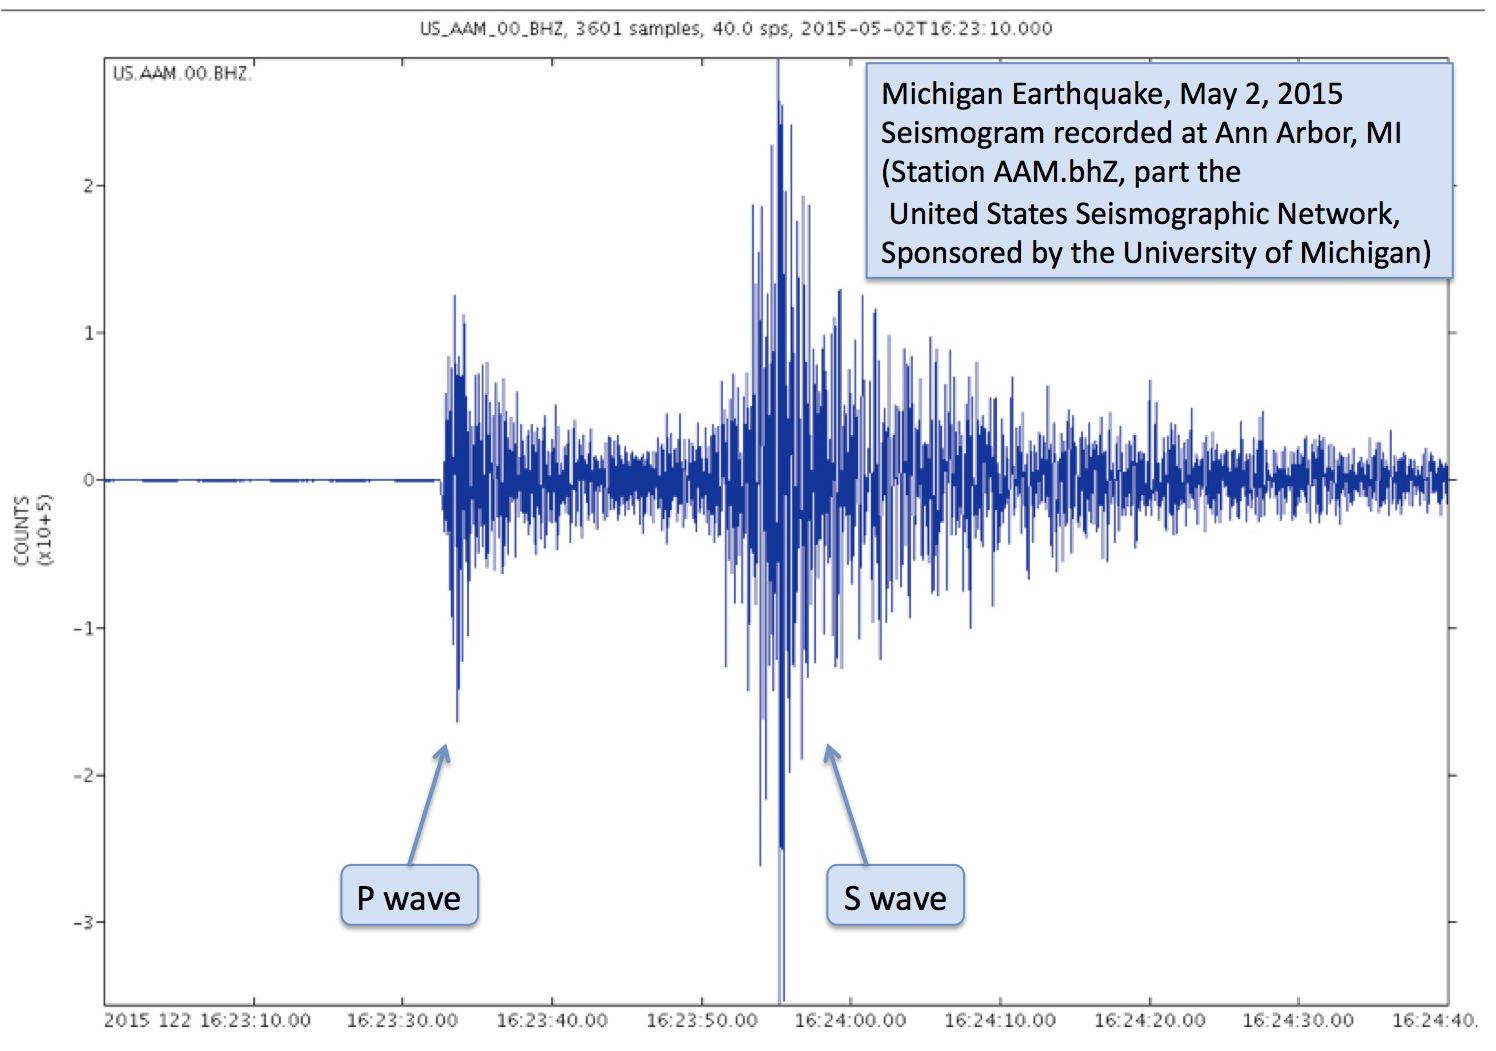 Seismogram of the magnitude-4.2 earthquake in Michigan on May 2, 2015, recorded at the seismic station at the University of Michigan, Ann Arbor. Image credit: University of Michigan